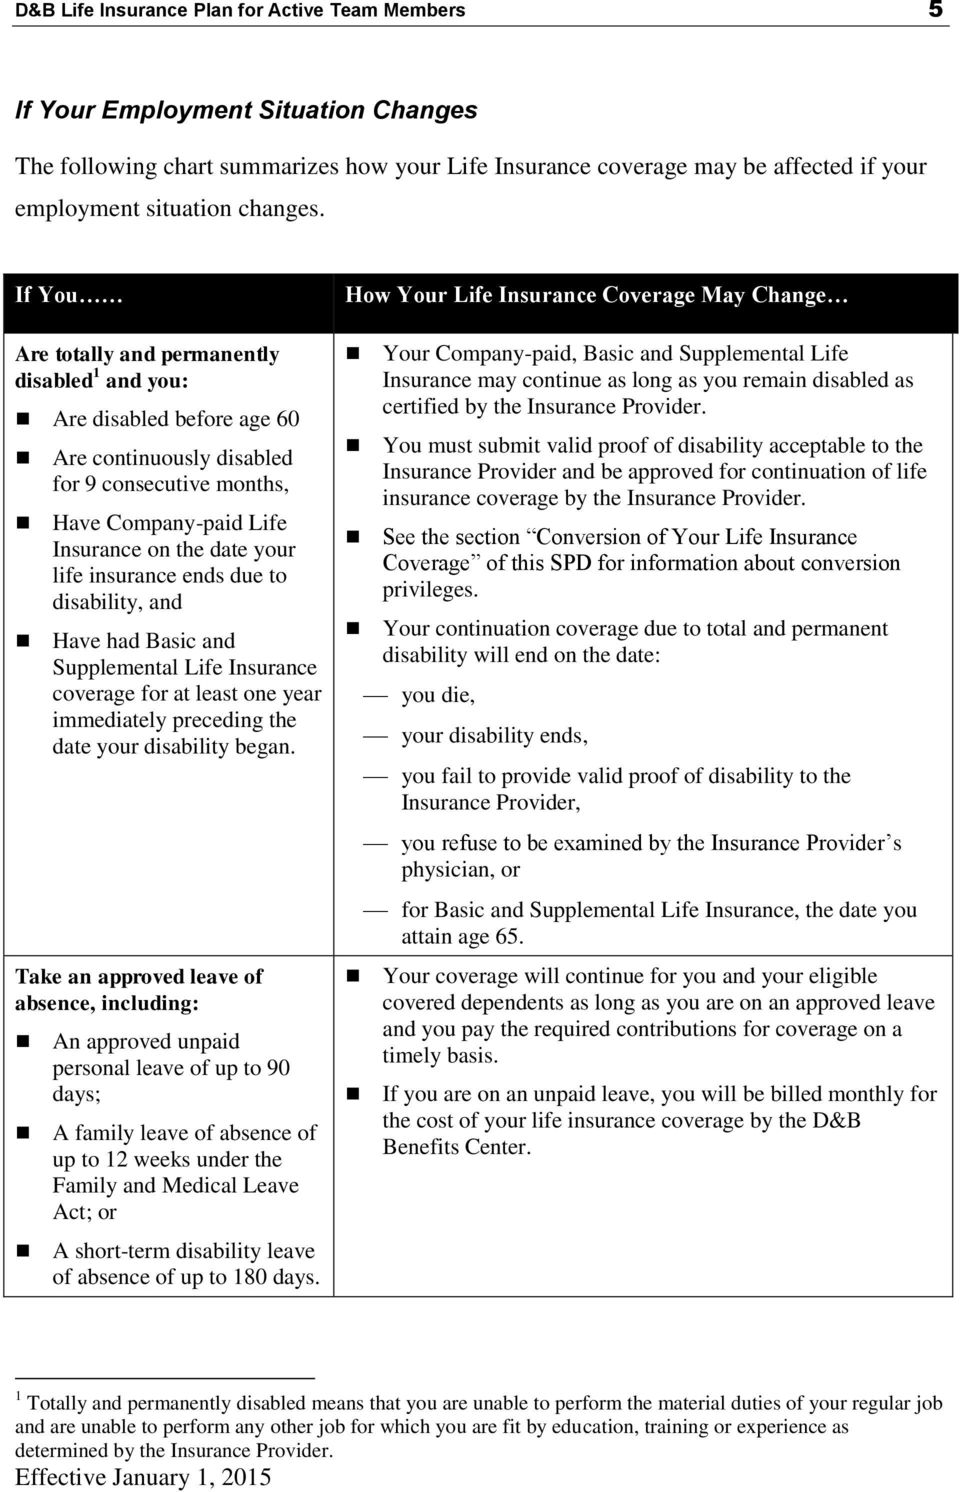 If You Are totally and permanently disabled 1 and you: Are disabled before age 60 Are continuously disabled for 9 consecutive months, Have Company-paid Life Insurance on the date your life insurance